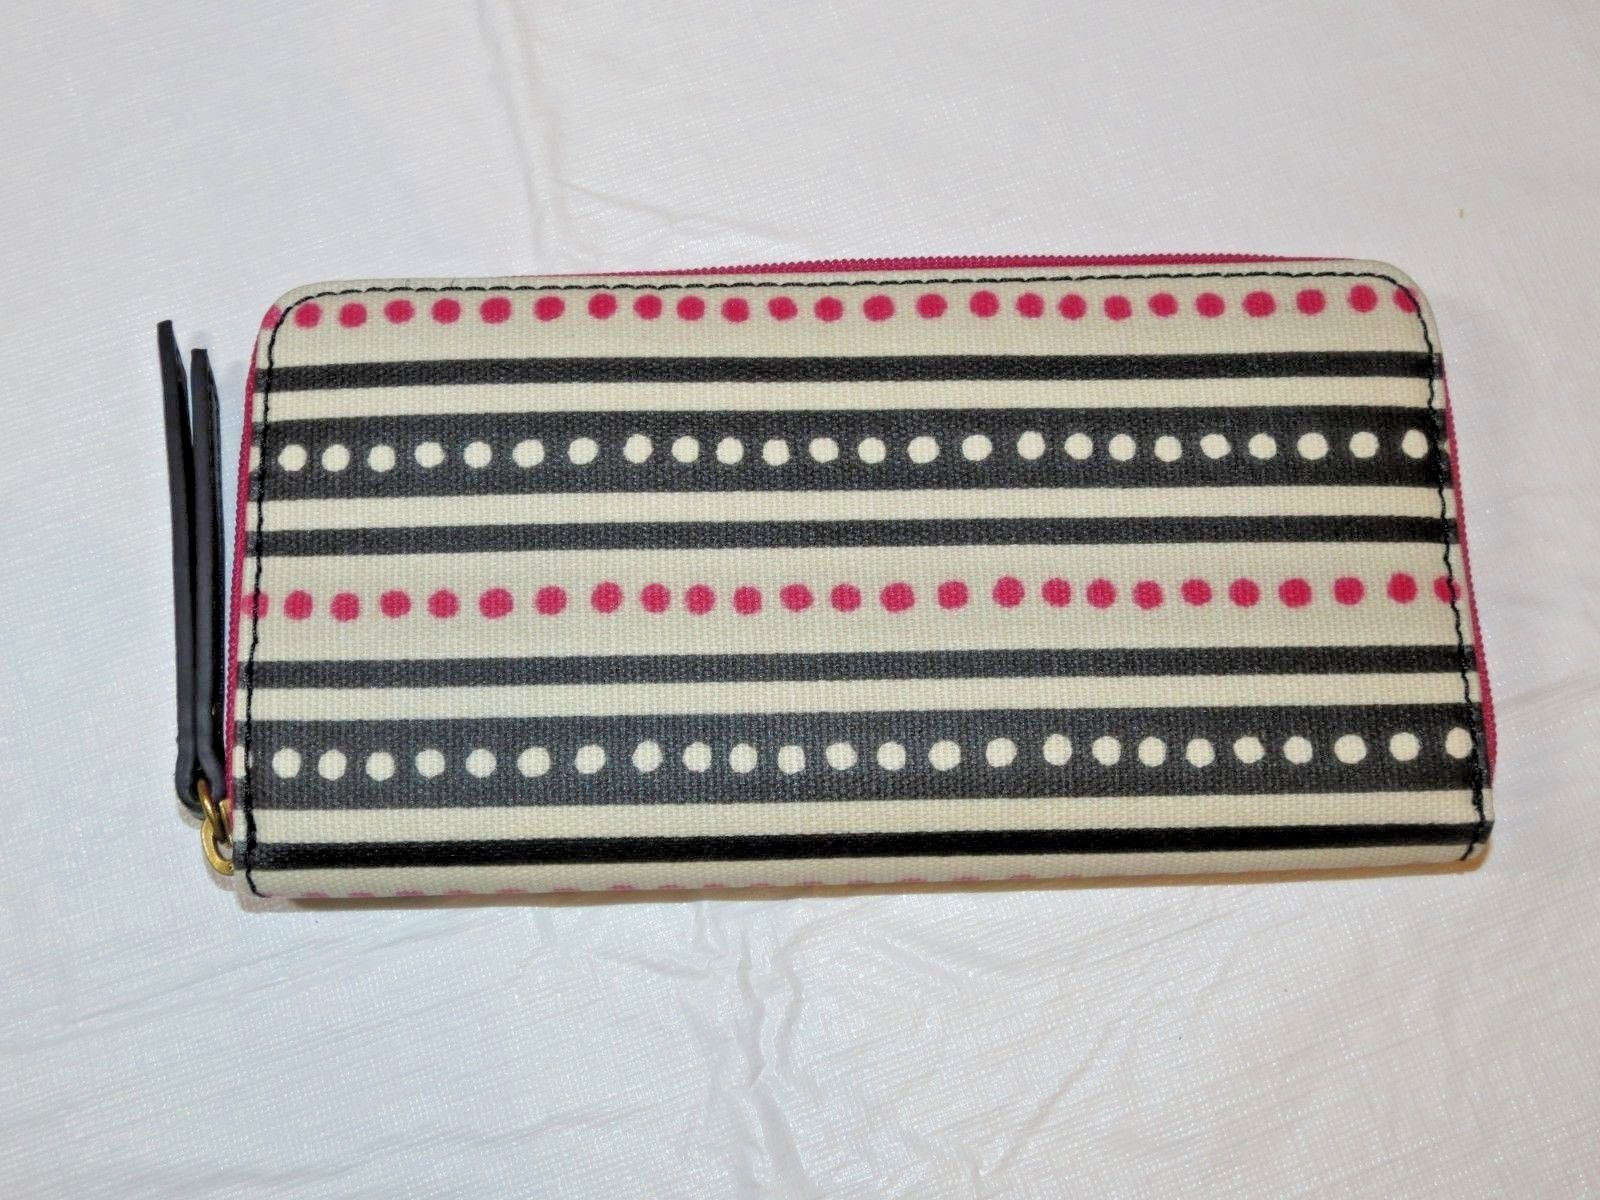 Fossil SWL2034339 Eliza Clutch Pink Dots Off white pink black clutch wallet *^ image 2